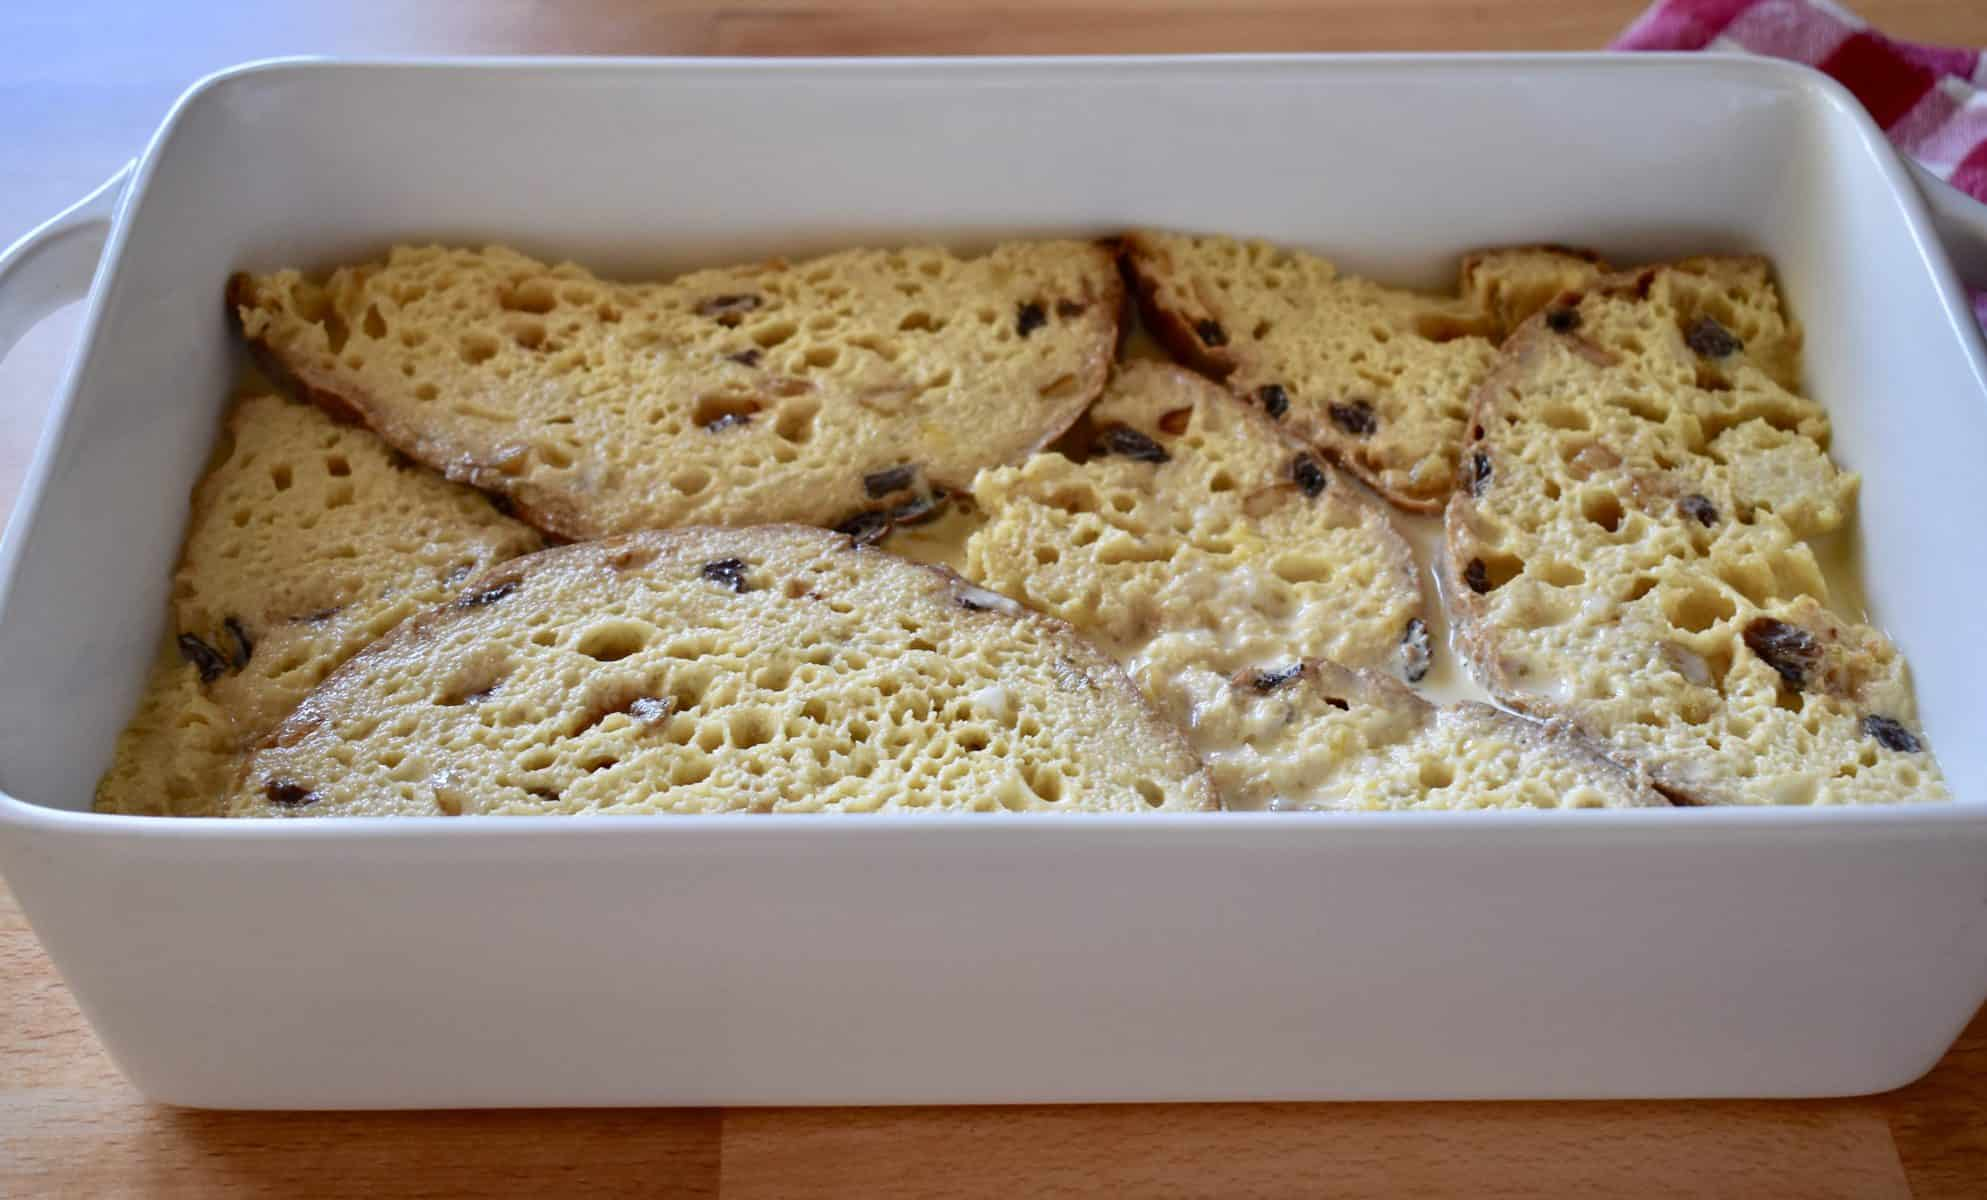 panettone French toast casserole in a white pan ready to bake.